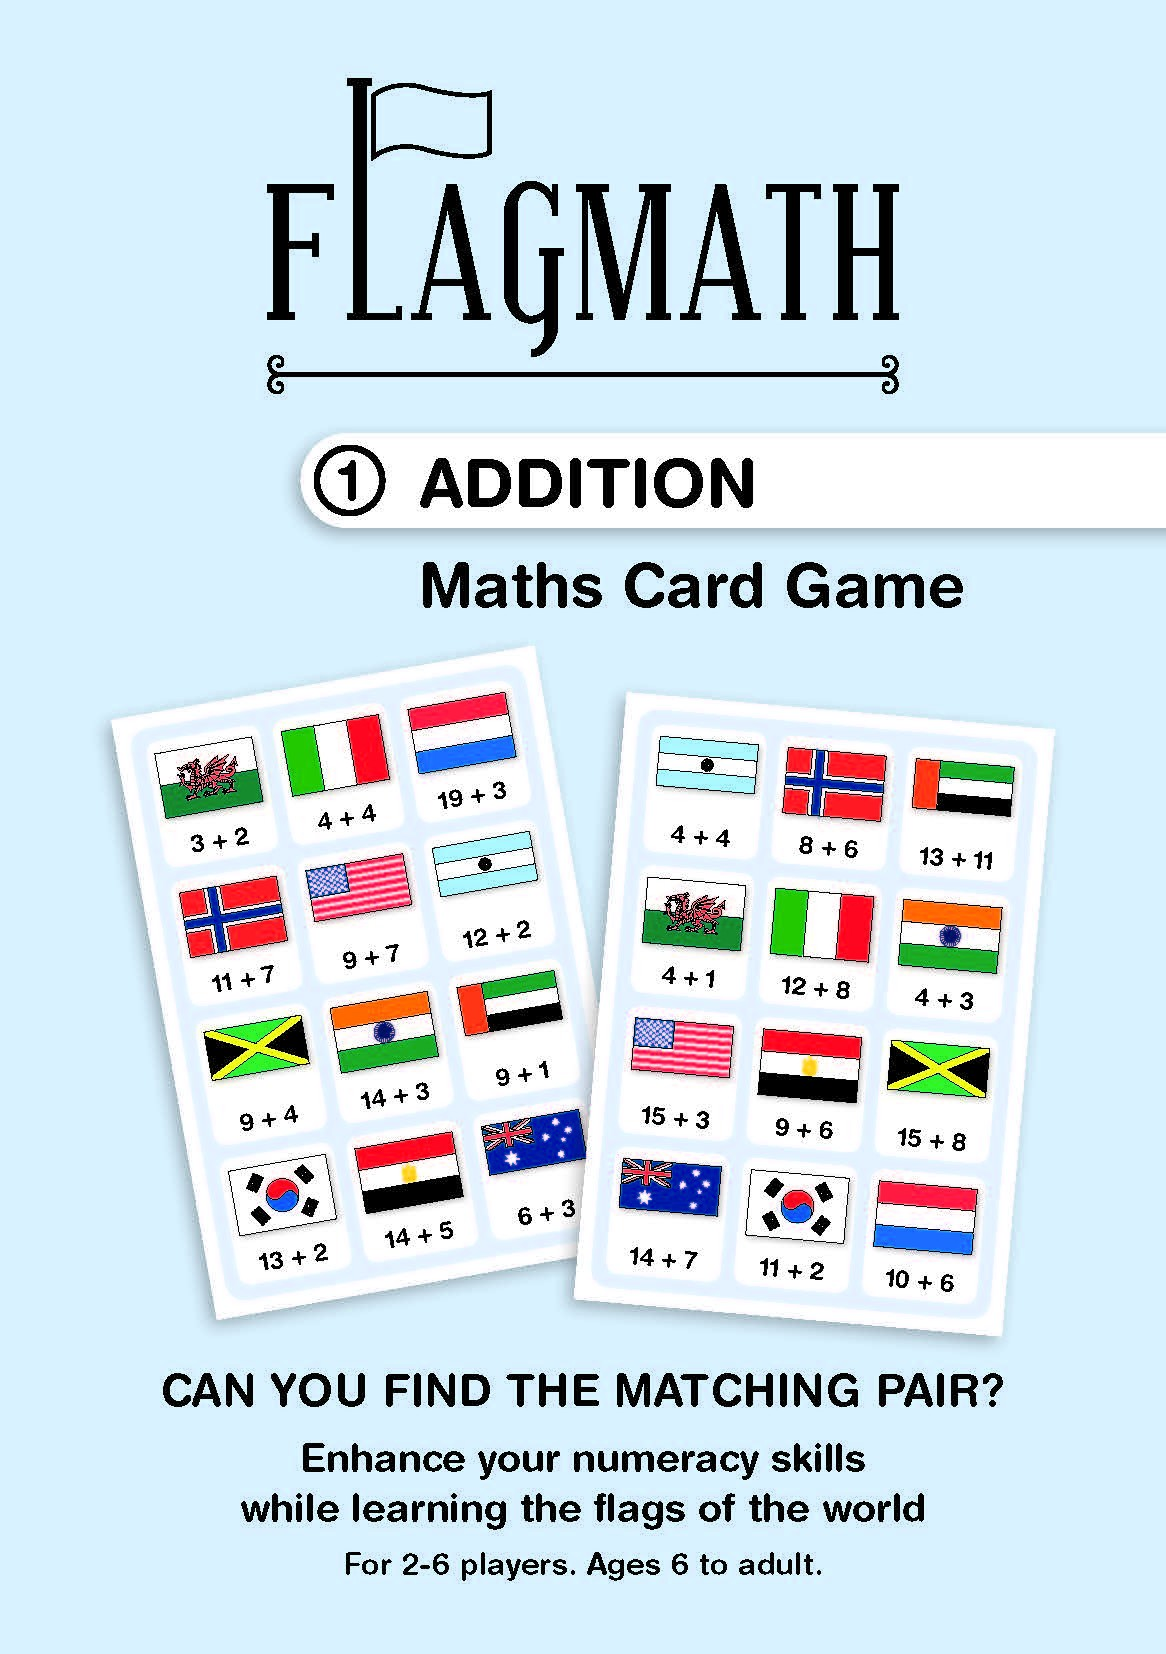 FlagMath - Addition: Mathematics Card Game